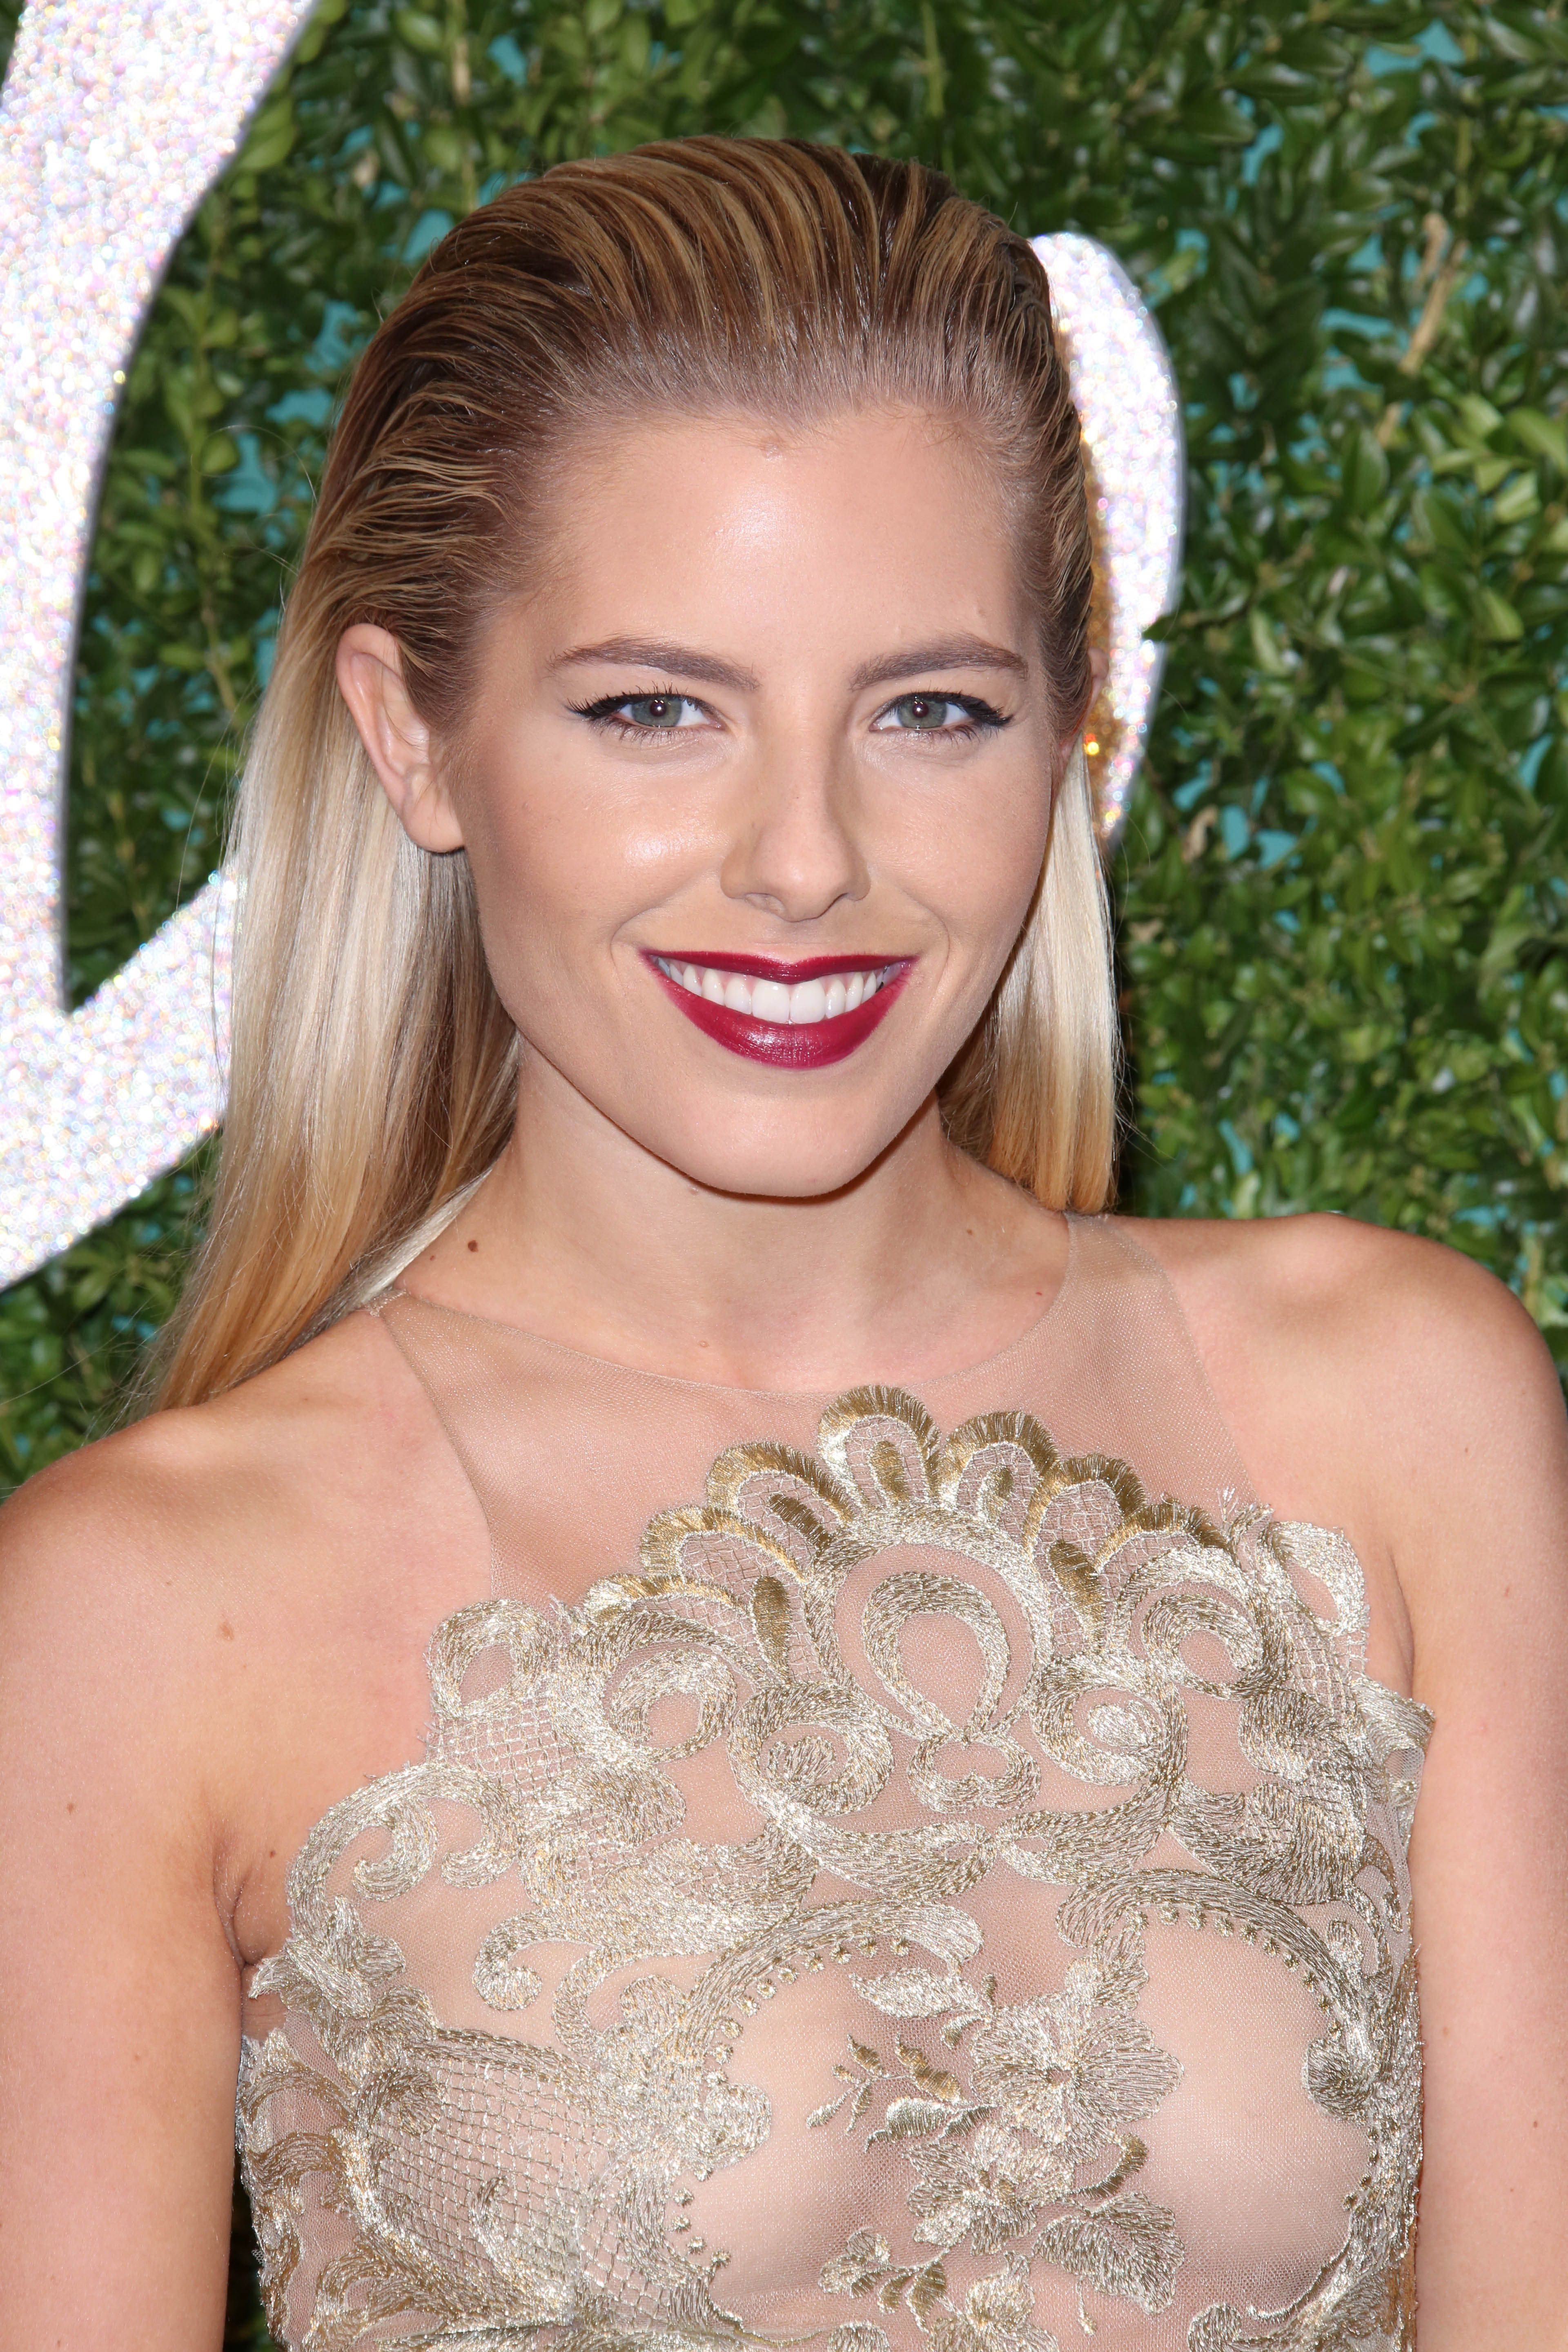 Mollie King's Date Night Outfit Is Pencil Perfection